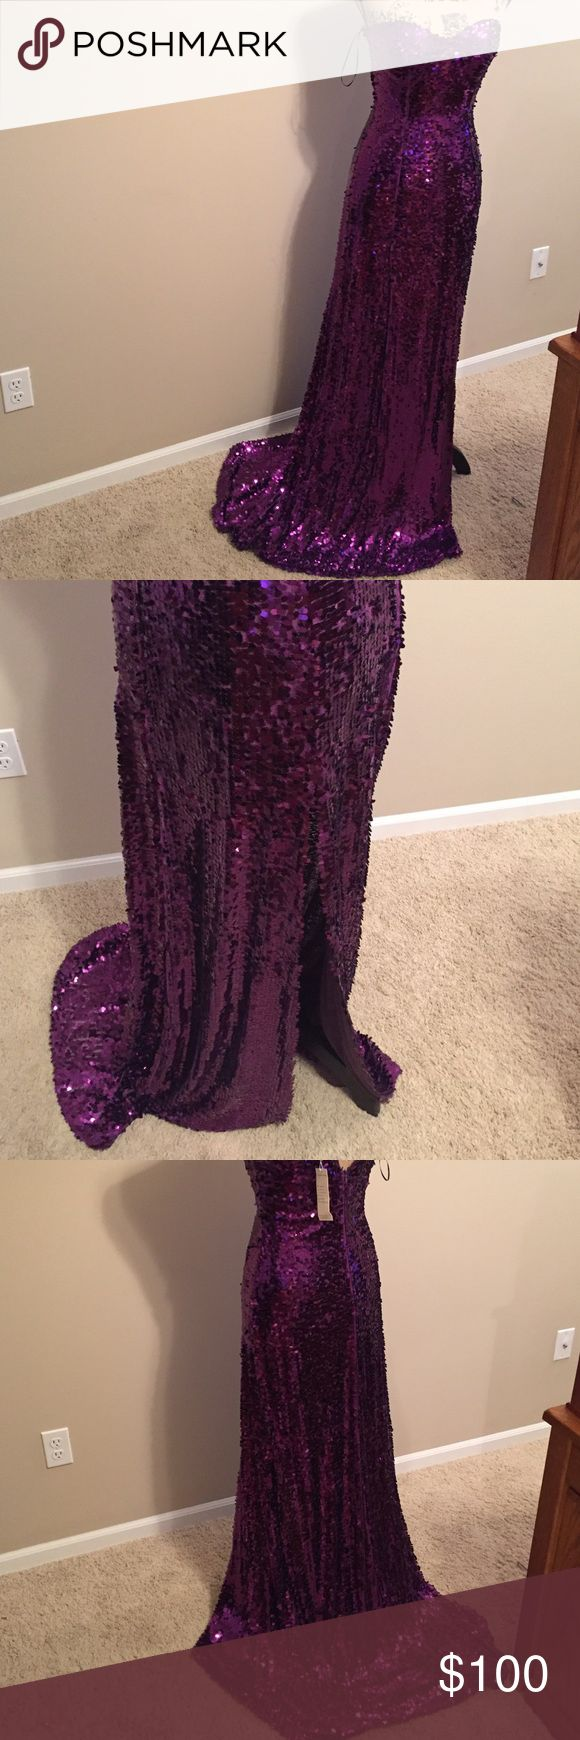 New with tags purple sequined evening gown size 6 New with tags purple sequined evening gown size 6. Strapless with side slit in skirt. From smoke free home and ships in one business day. Thank you!!' beautifly Dresses Prom